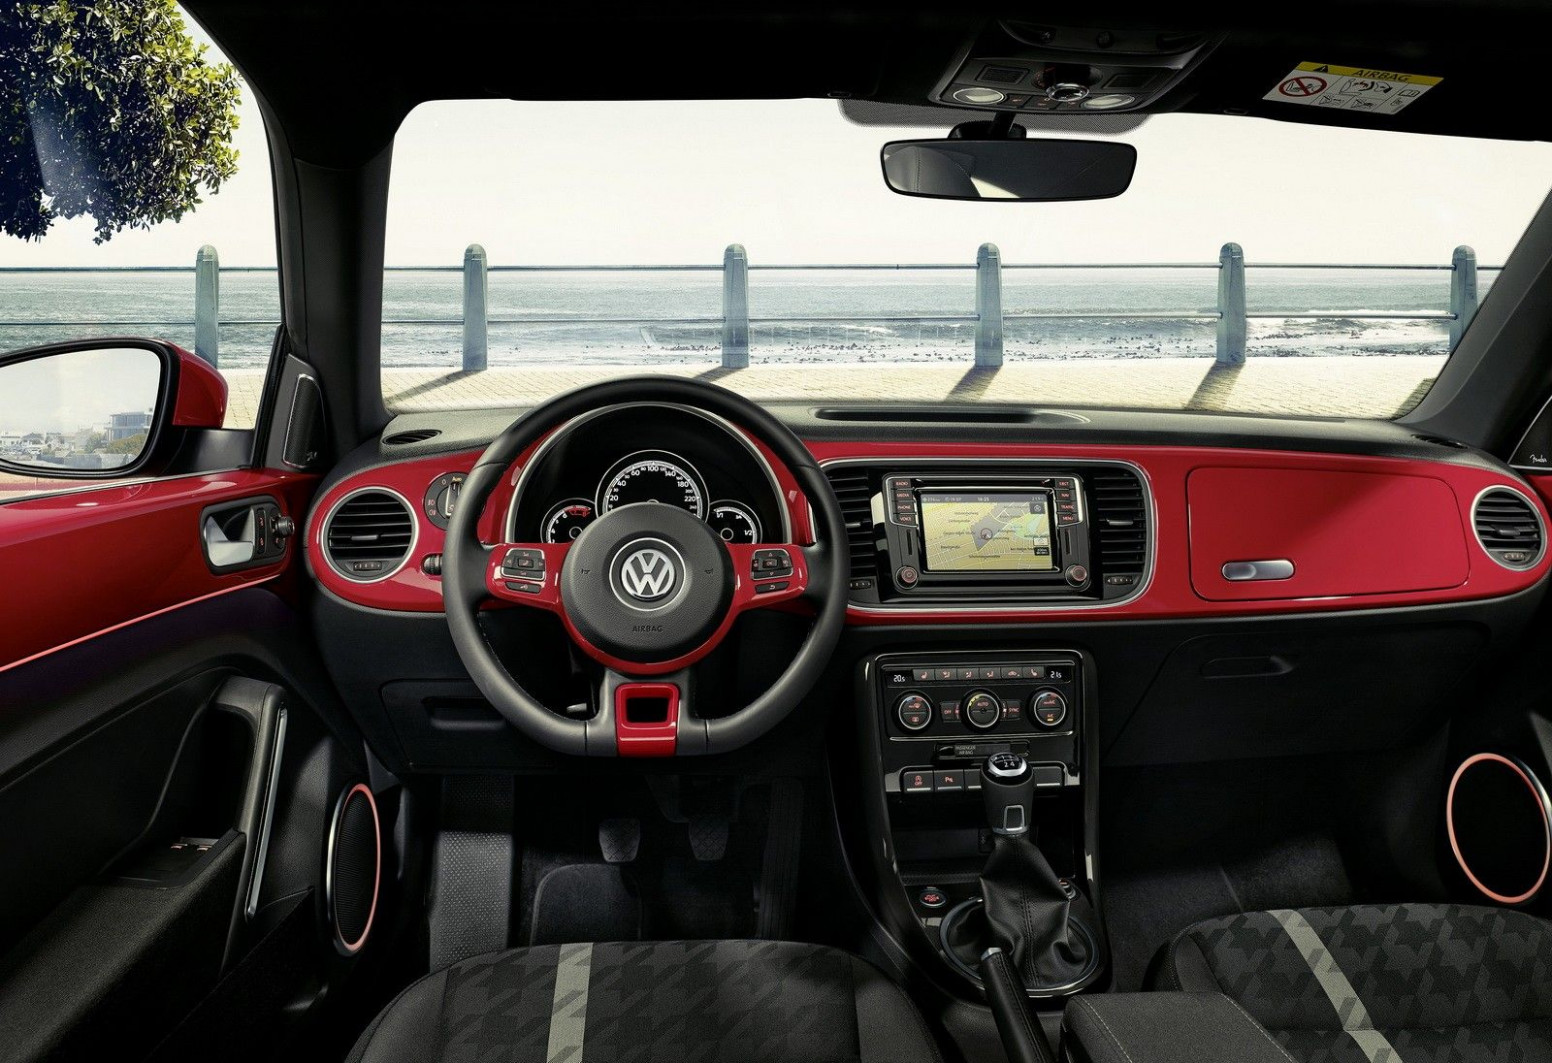 Best images of Volkswagen Beetle SUV 8. (With images ...